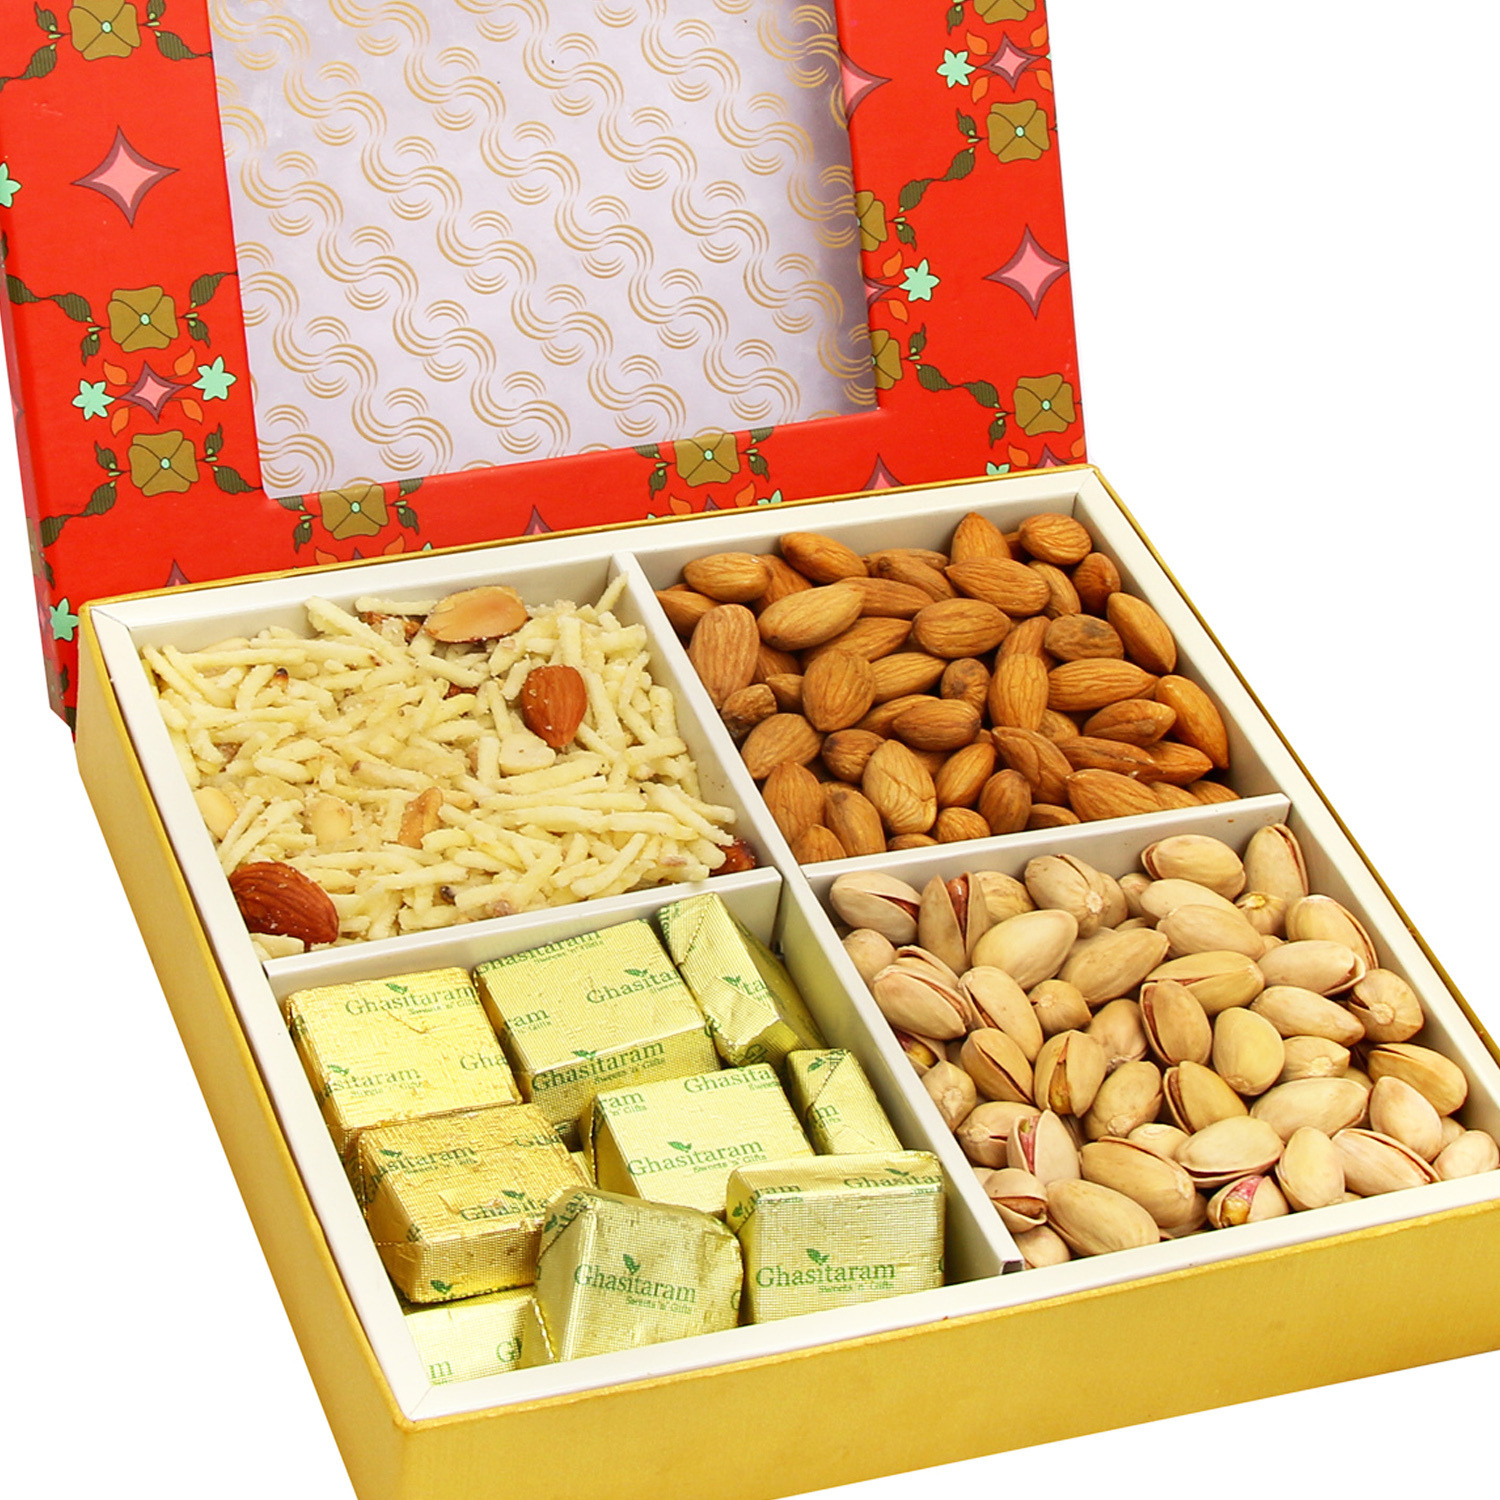 Hampers - Red Printed 4 Part Almonds,Pistachios,Chocolate And Namkeen Box